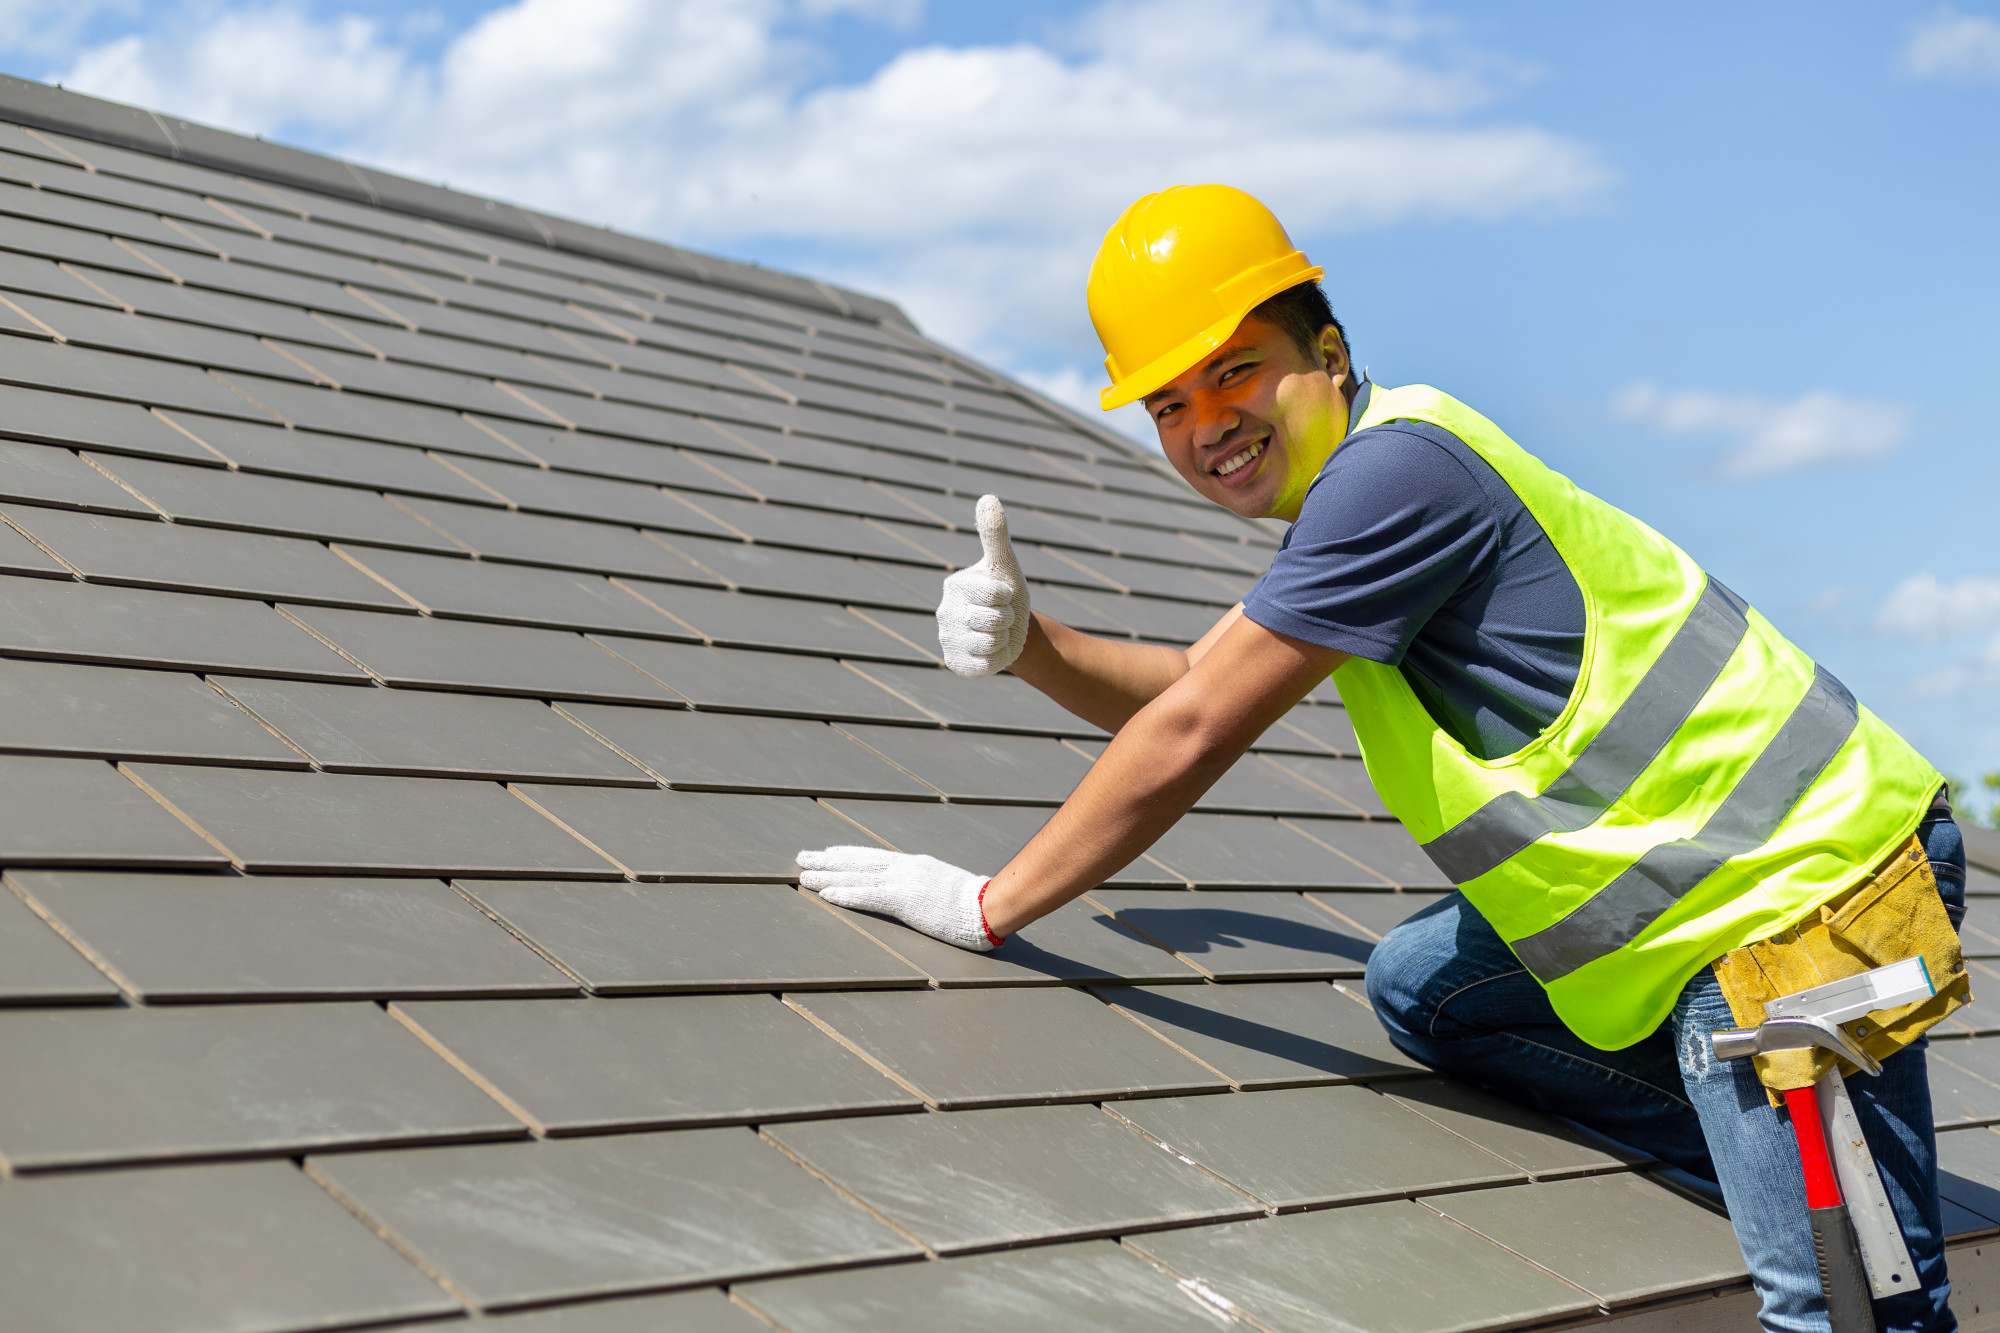 Why Should The Roofing Contractor Have An Insurance?